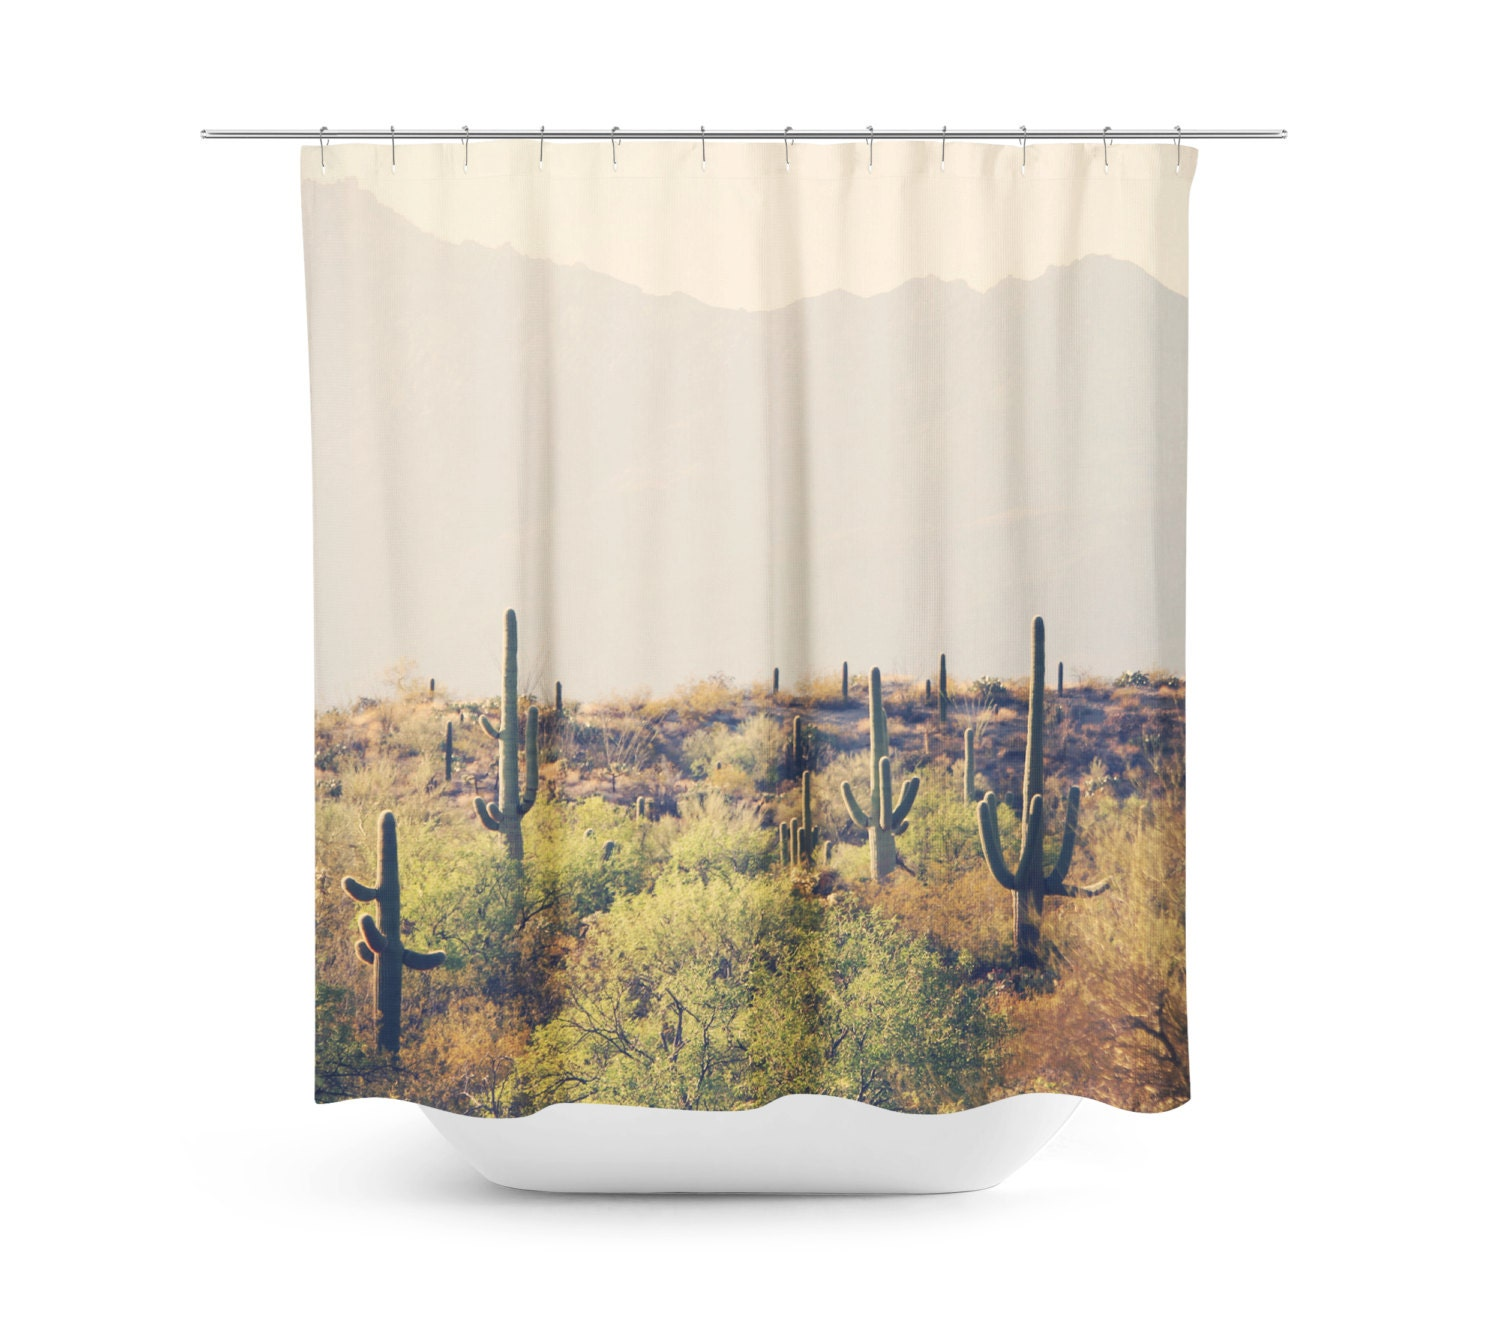 cactus shower curtain desert home decor rustic bathroom decor southwest photo tucson - Home Decor Tucson